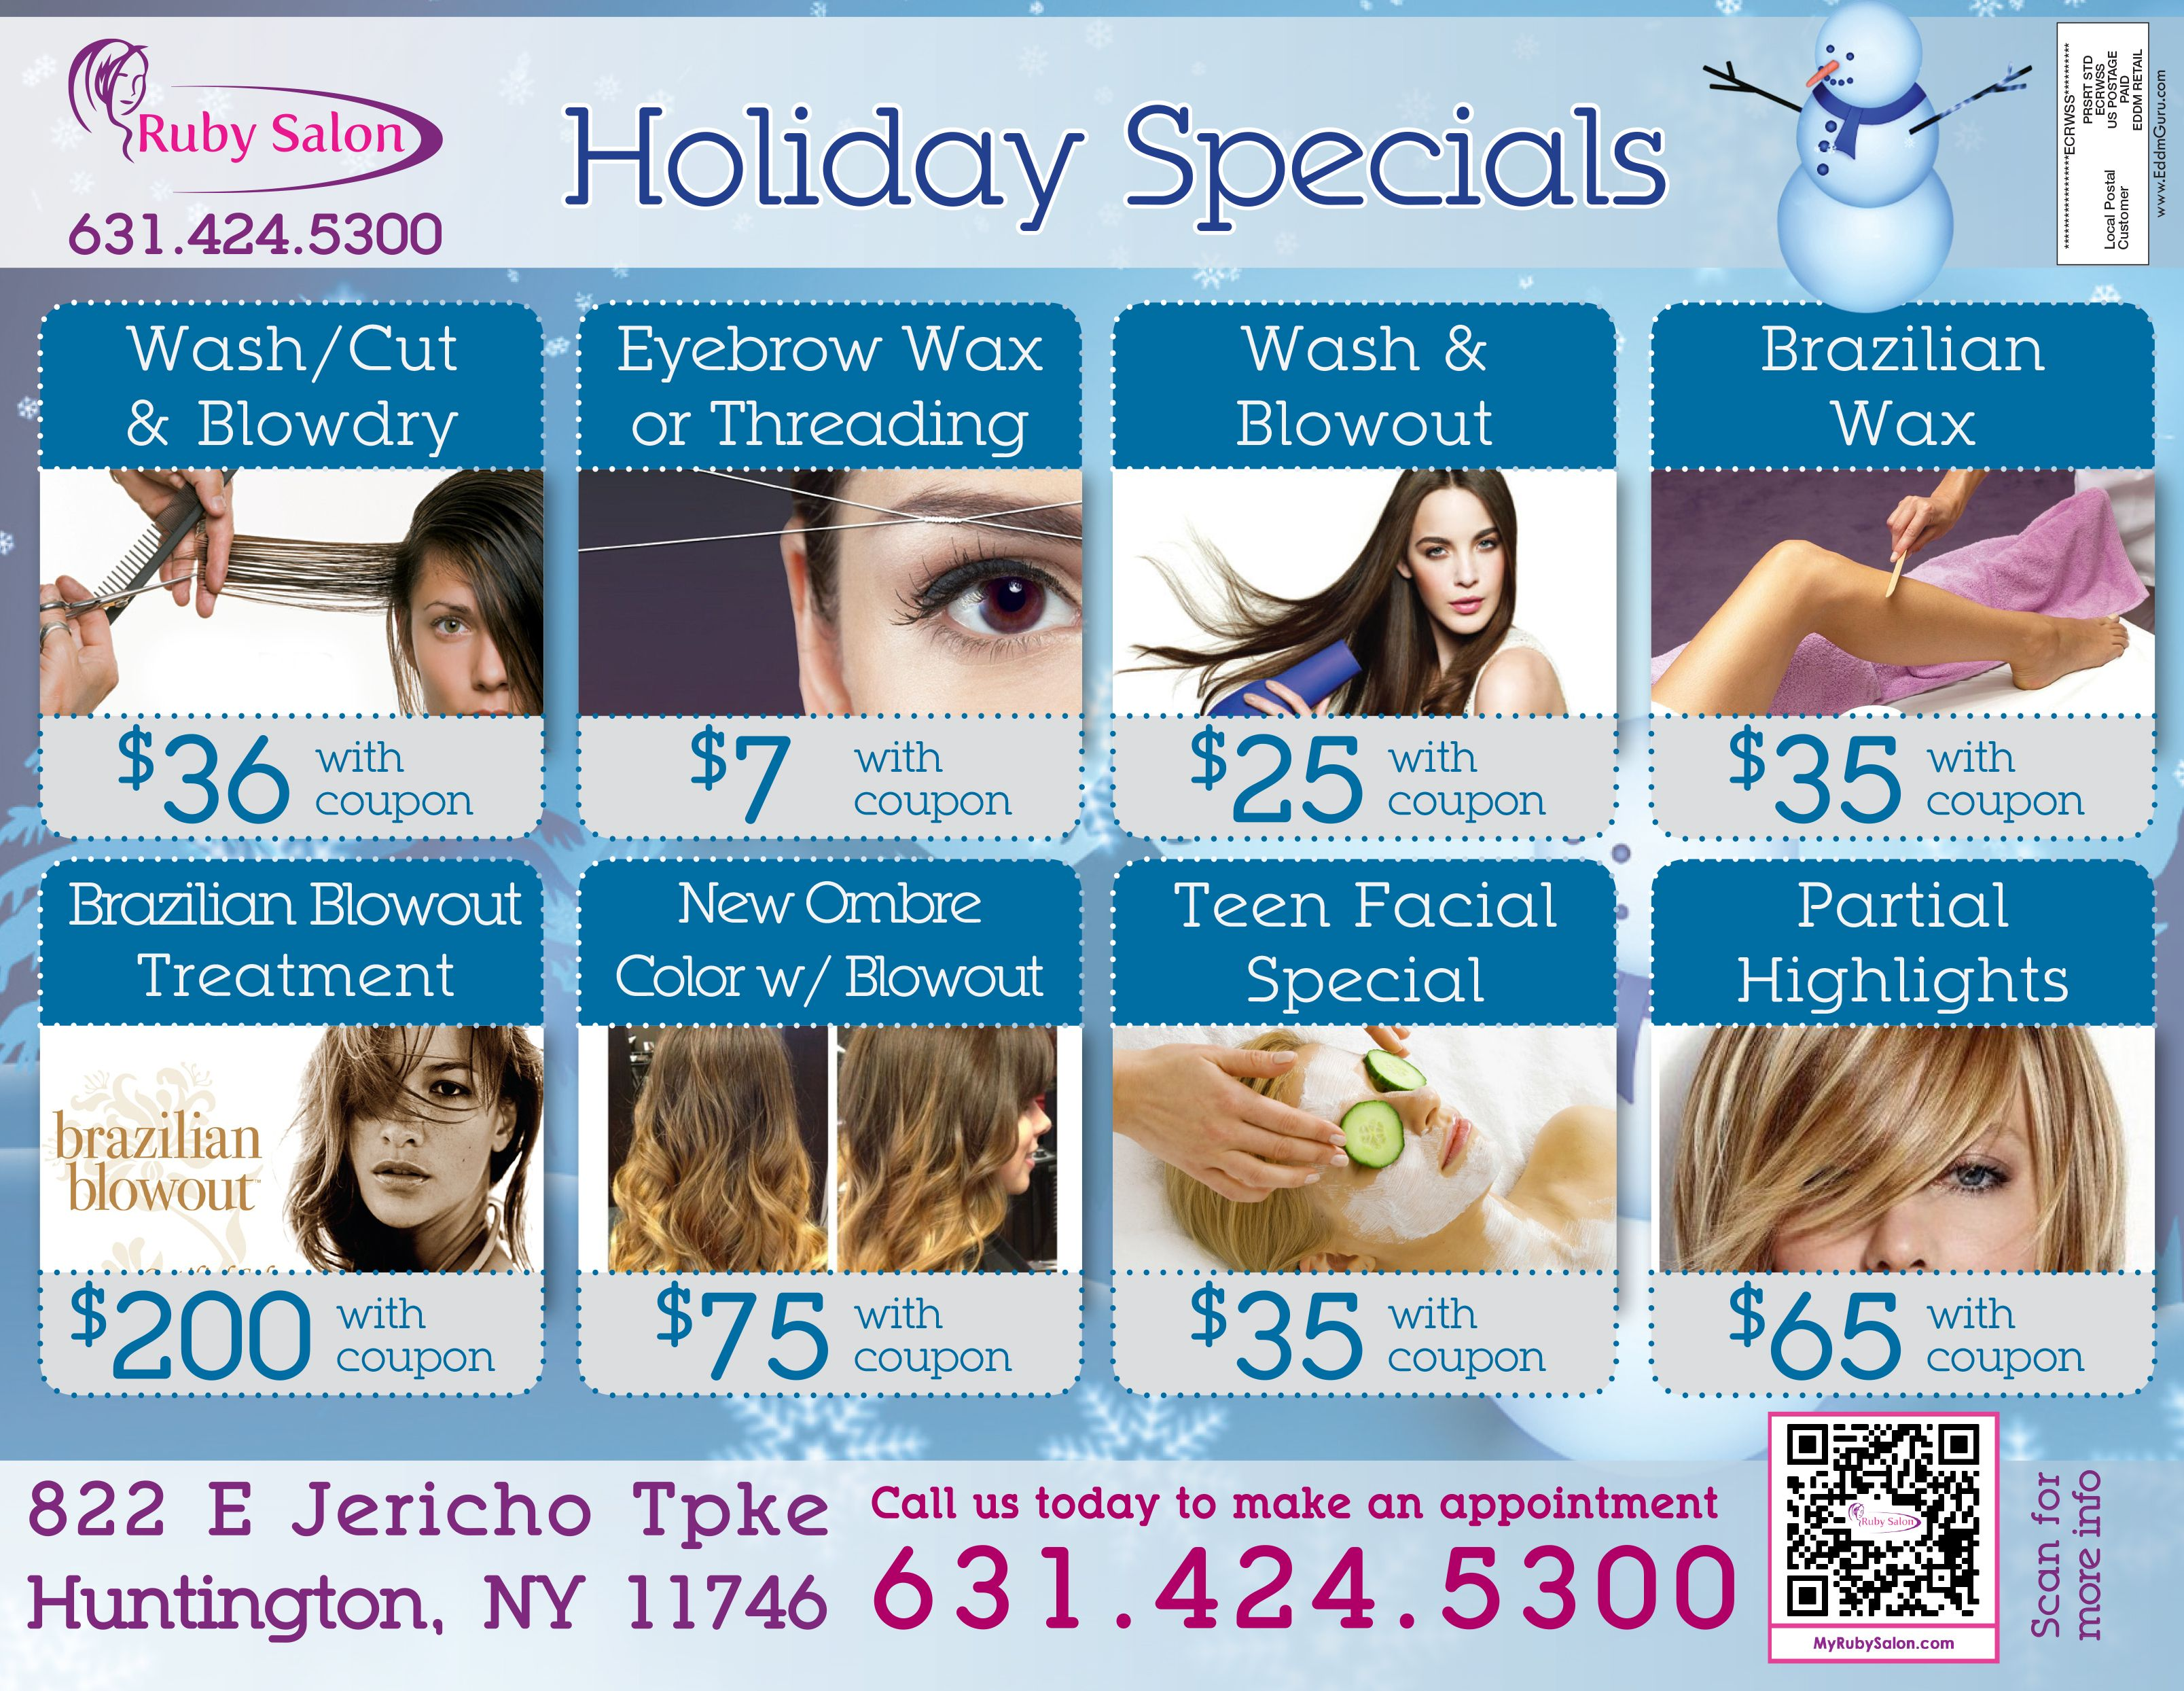 Ruby Salon Offer Holiday Specials Christmas New Year Deals Coupons Hair Salons Deals Haircuts Threadin Salon Promotions Hair And Beauty Salon Wax Hair Removal